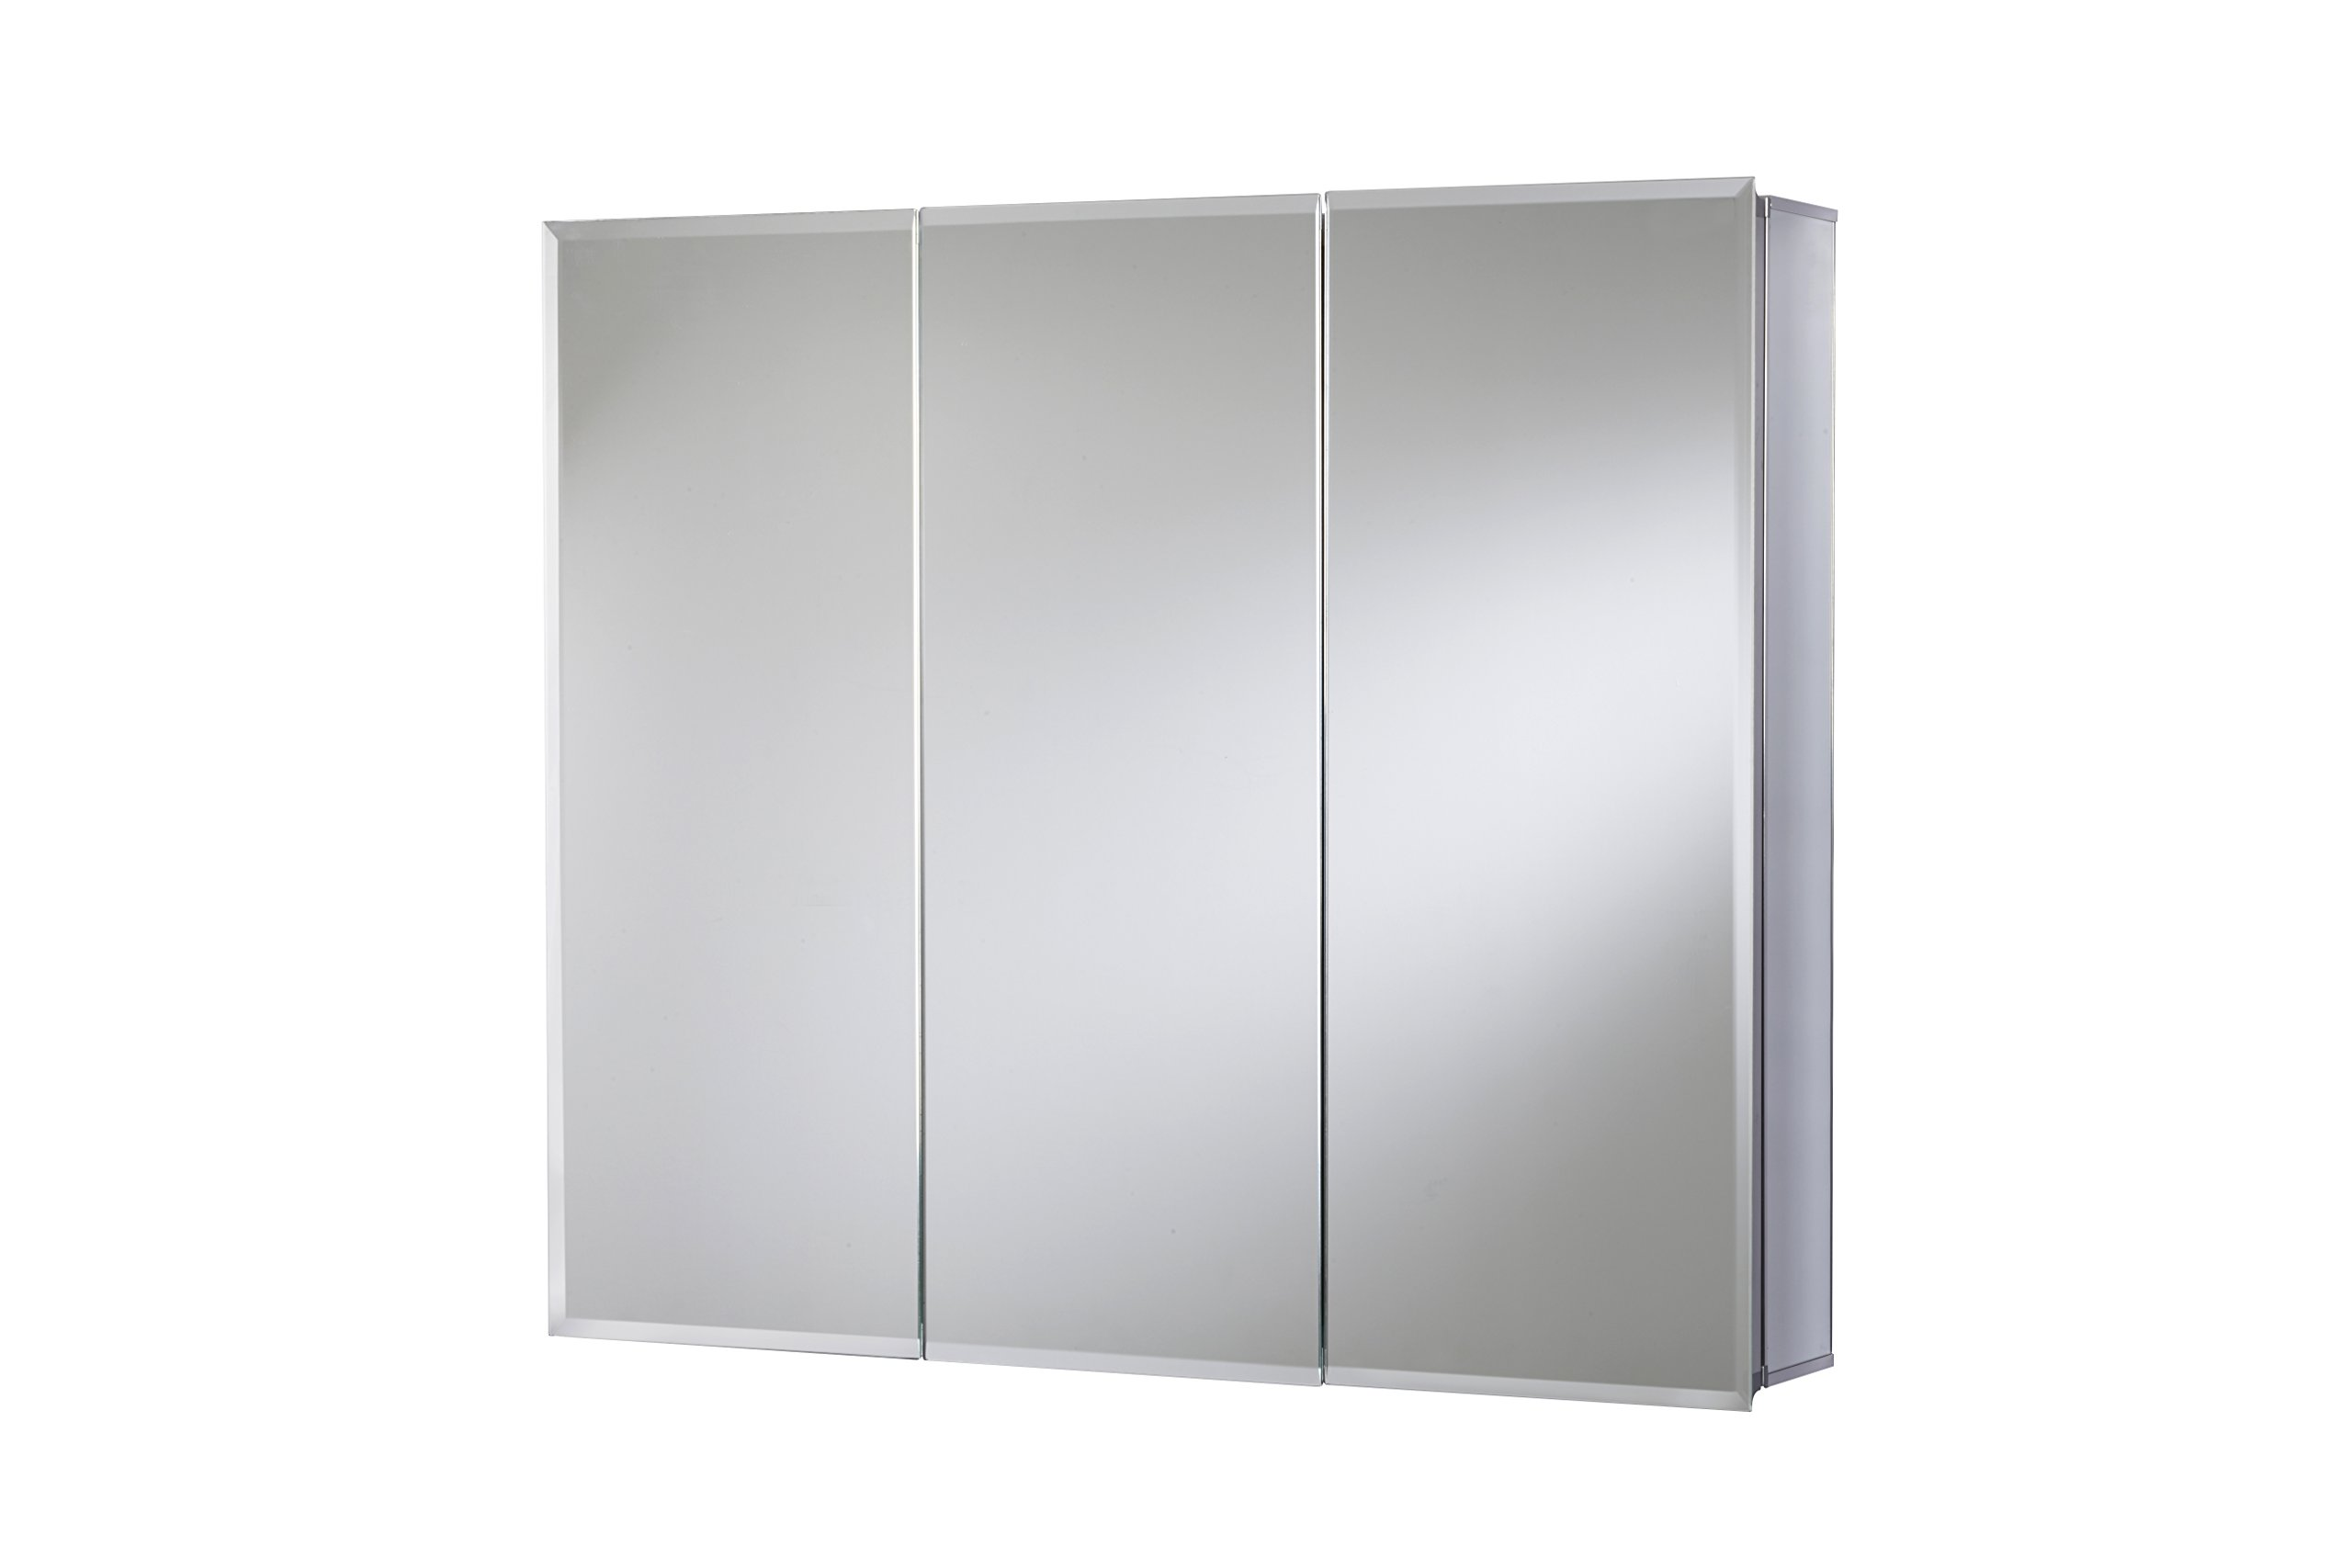 Croydex Kennett 26-Inch x 36-Inch Triple Door Tri-View Cabinet with Hang 'N' Lock Fitting System